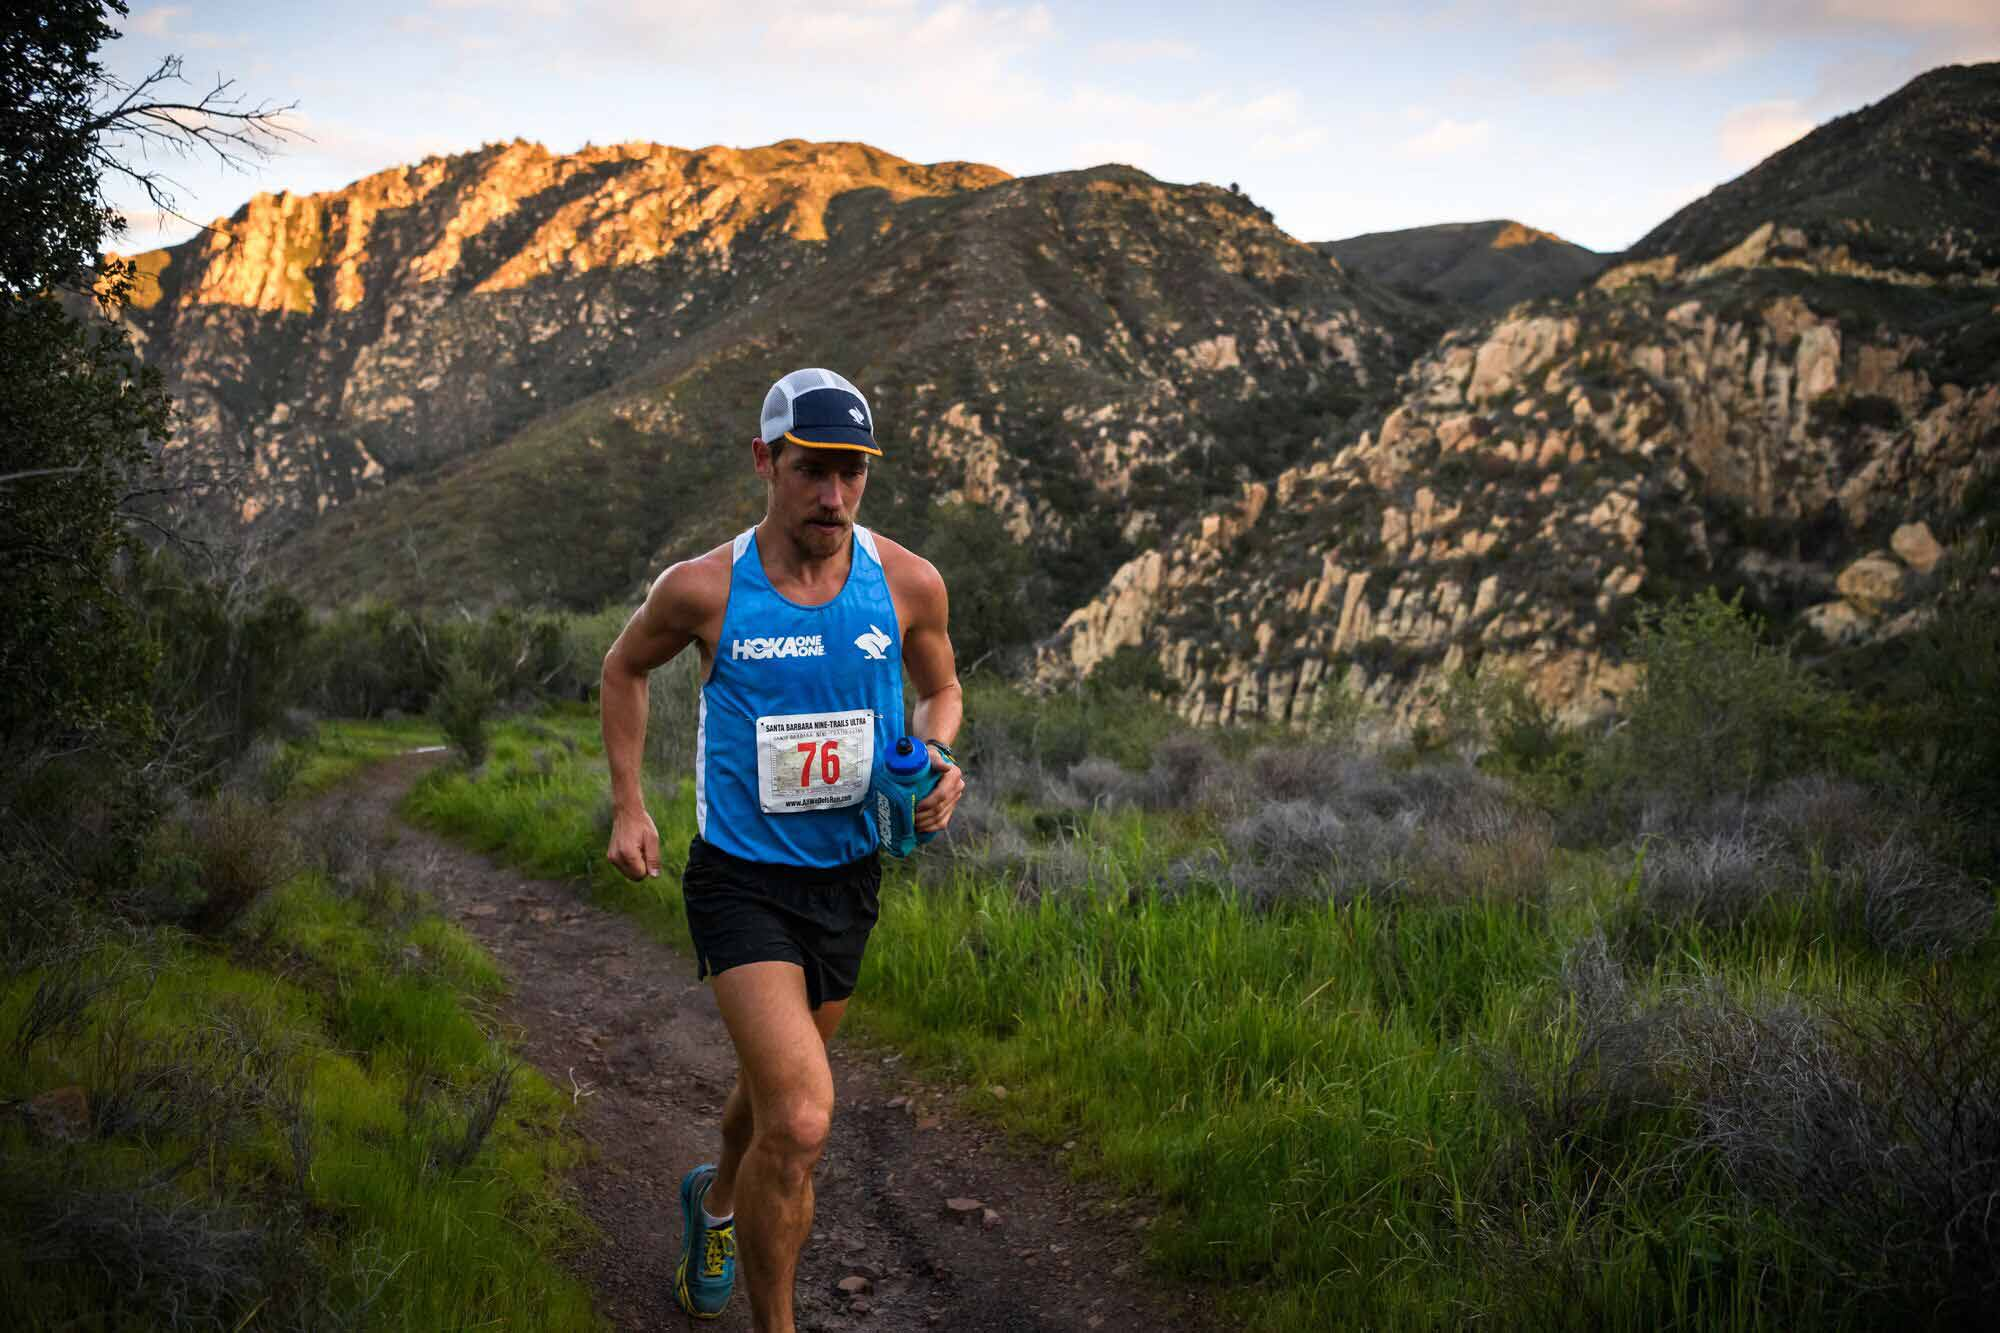 Emphasis vs elimination: HOKA Athlete Kris Brown's approach to running nutrition